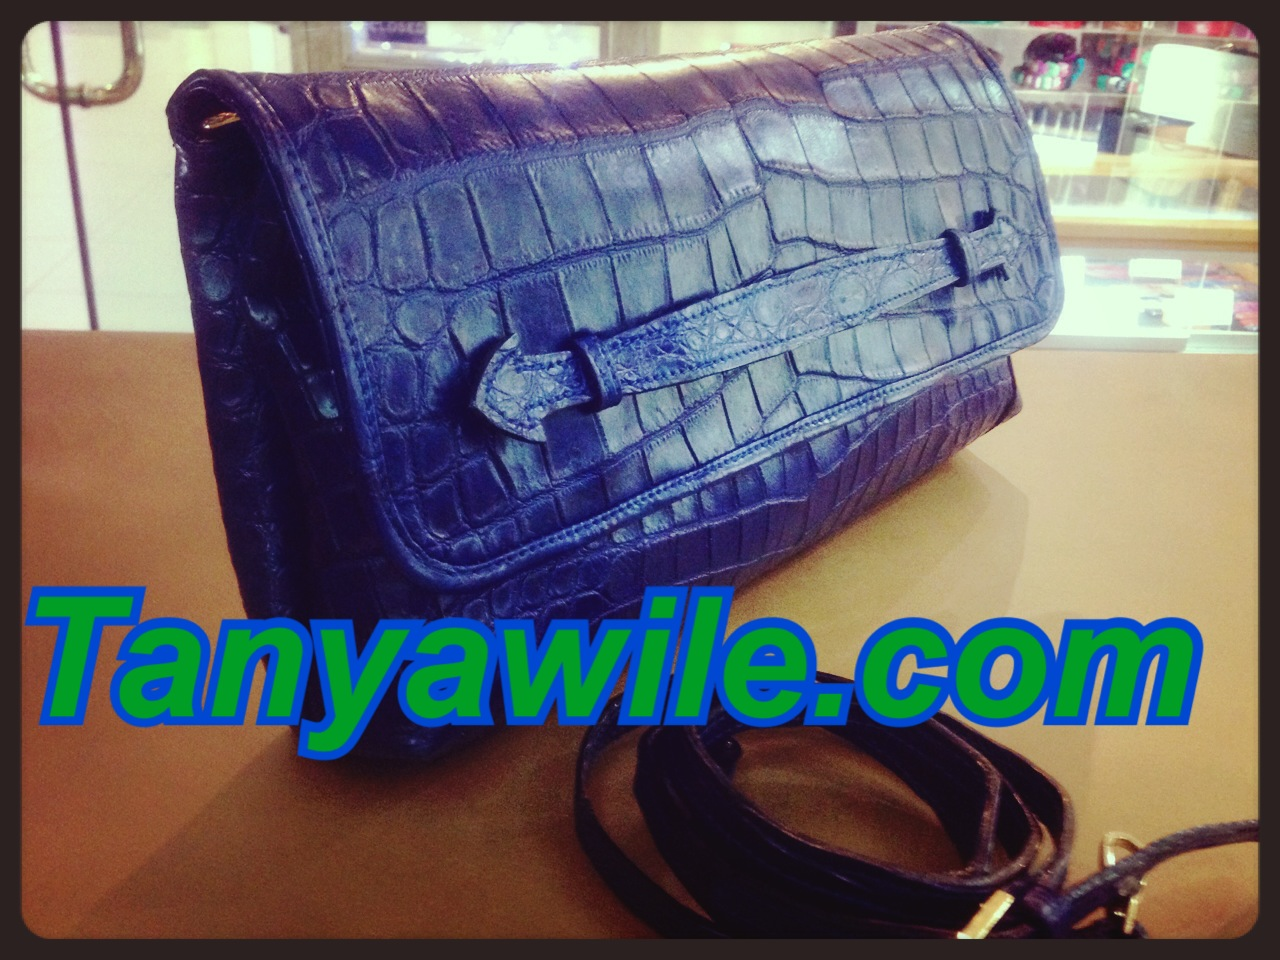 Crocodile leather clutch with strap in navy blue